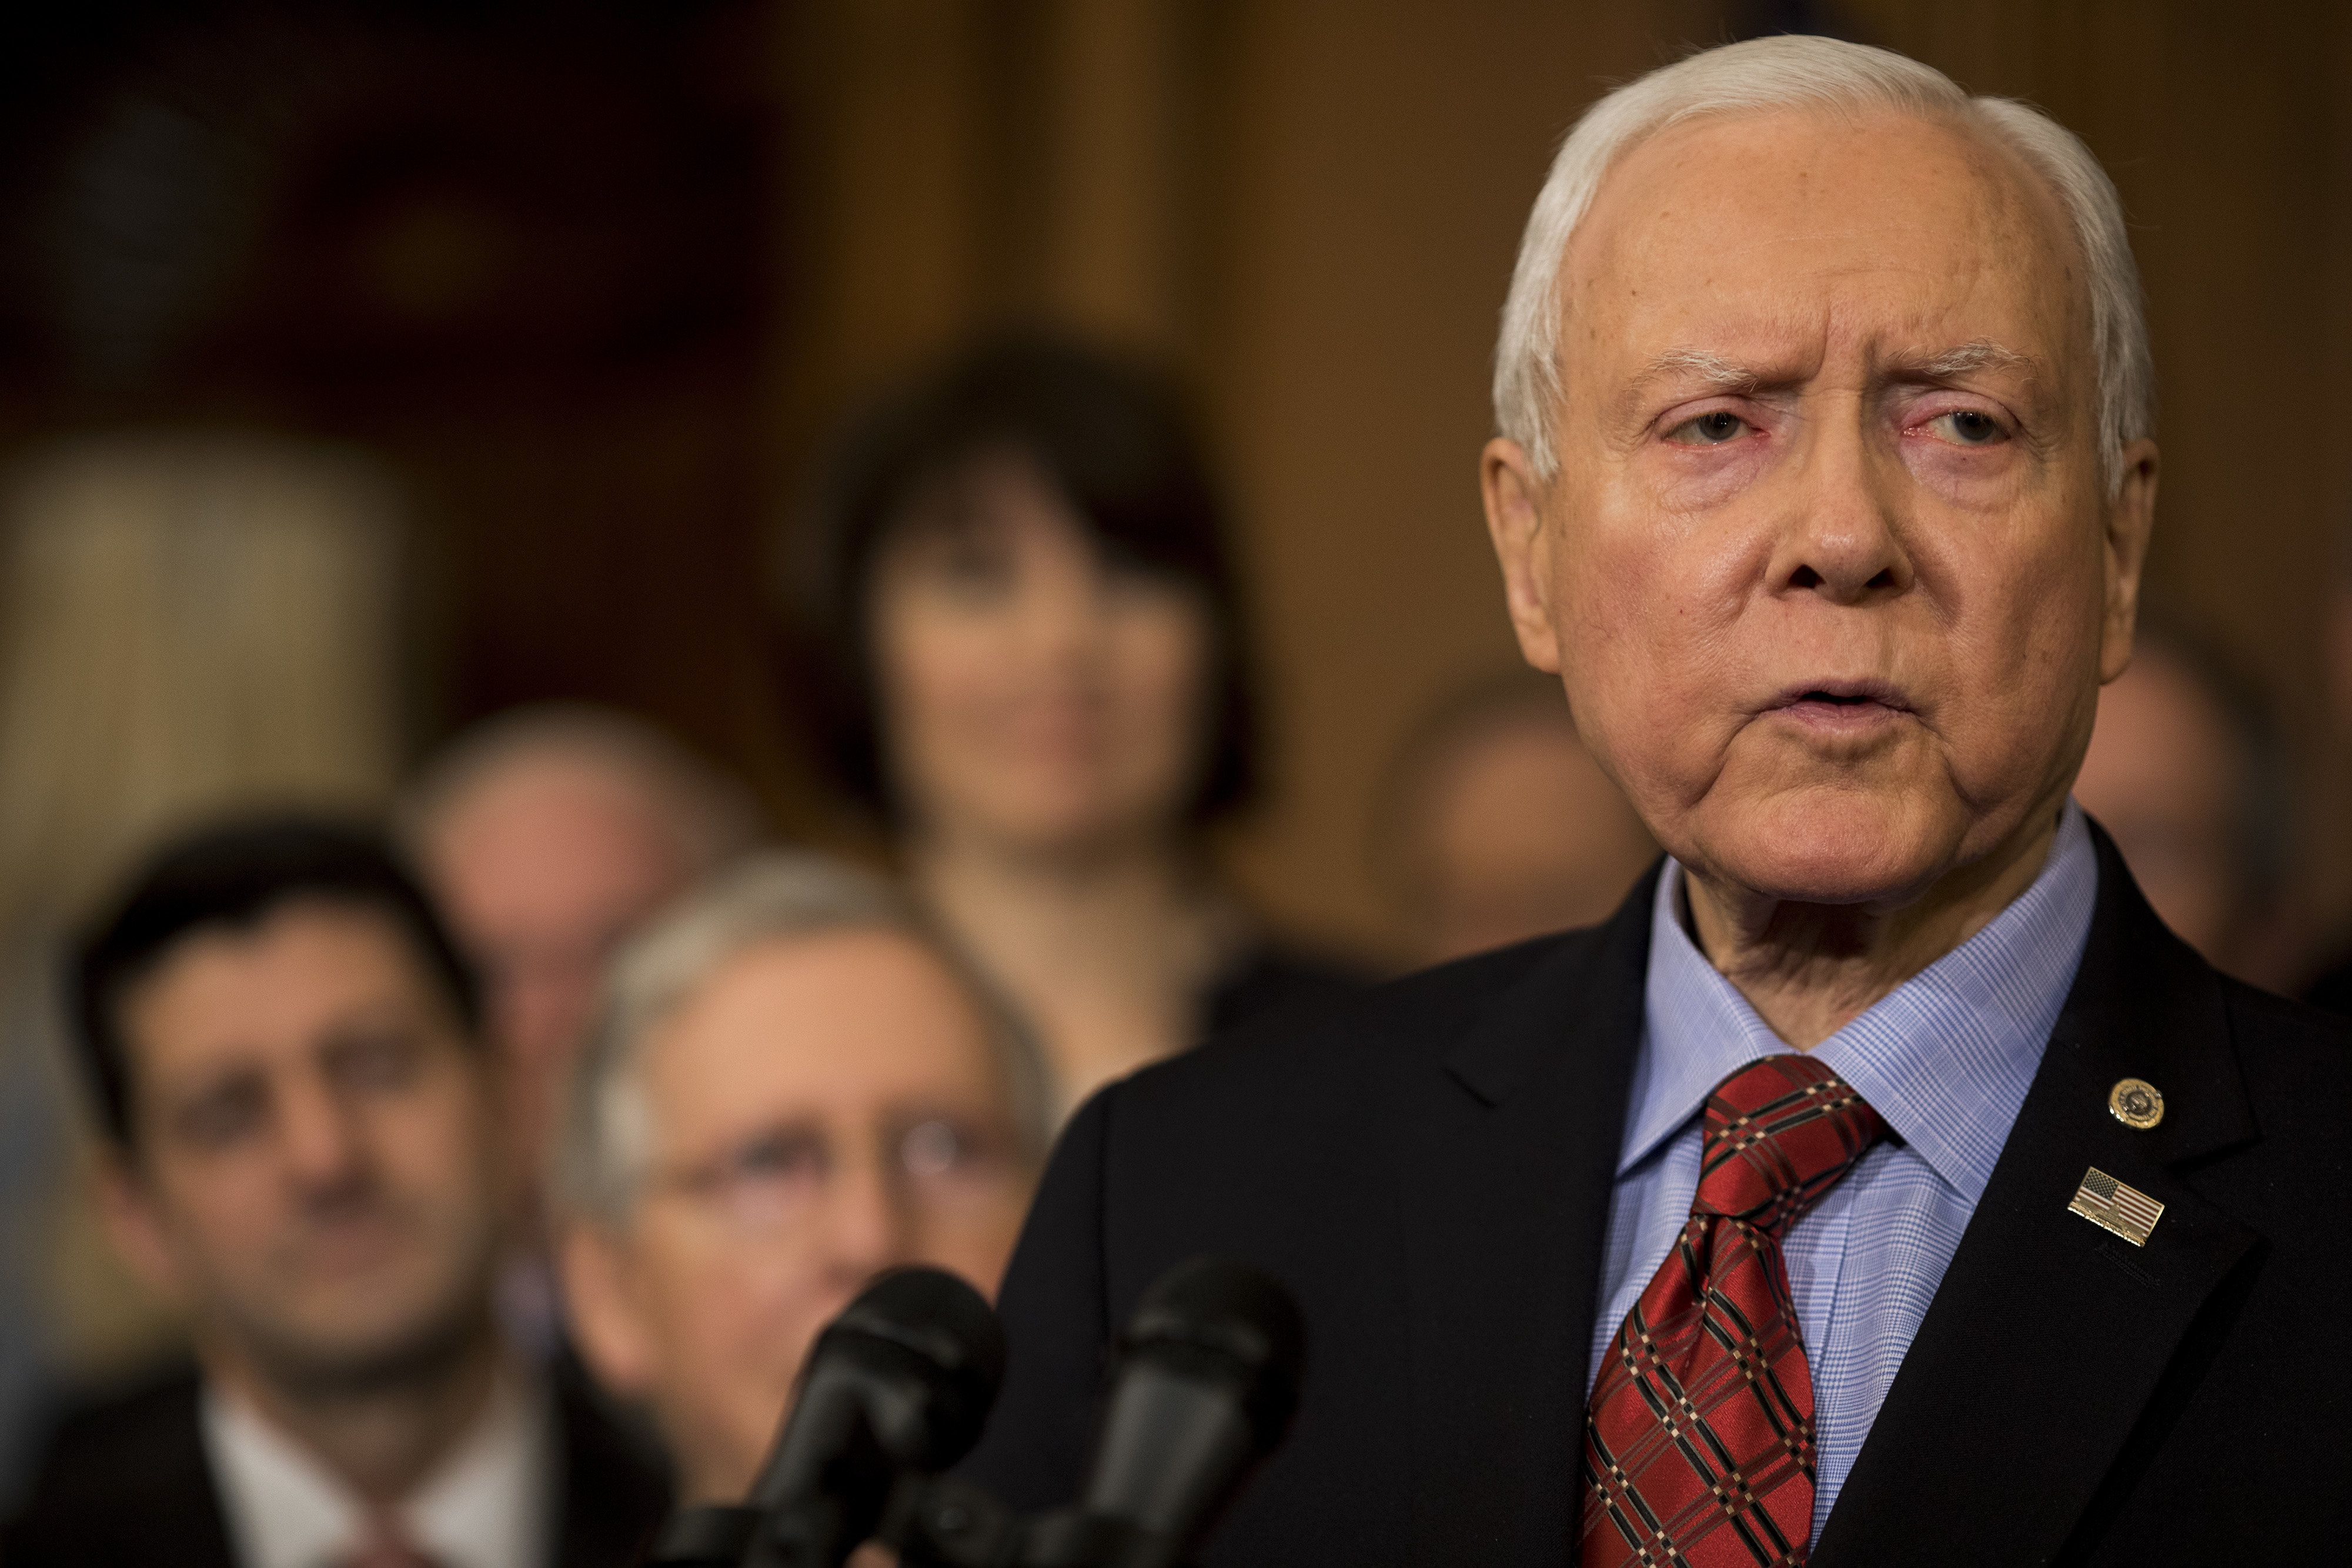 Sen. Orrin Hatch (R-Utah) has served in the Senate since 1977. The Salt Lake Tribune editorial board thinks Hatch has stayed